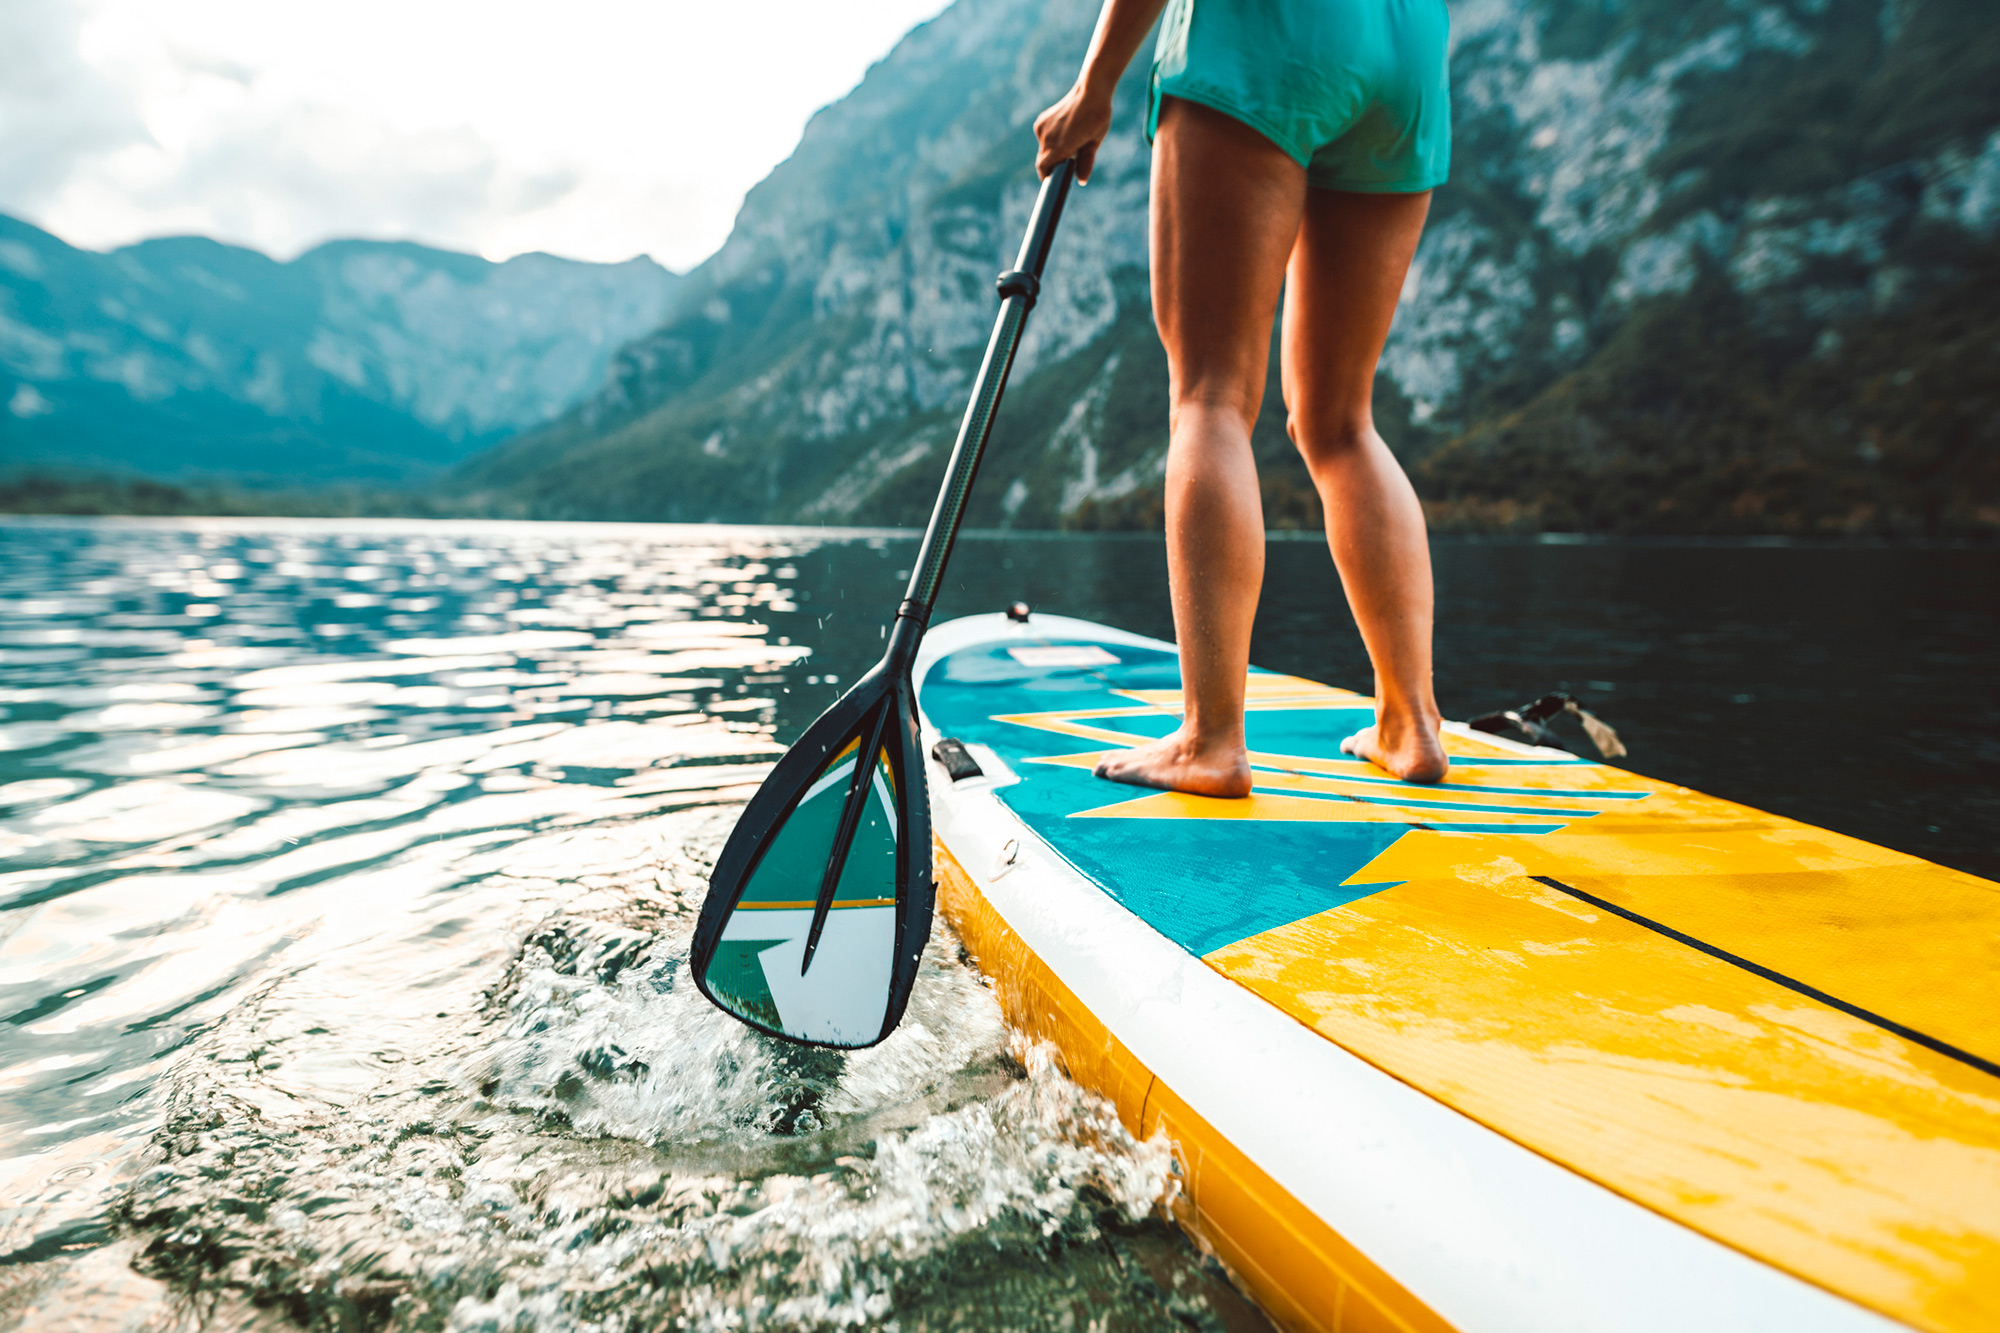 Try Stand Up Paddle Boarding (SUP)